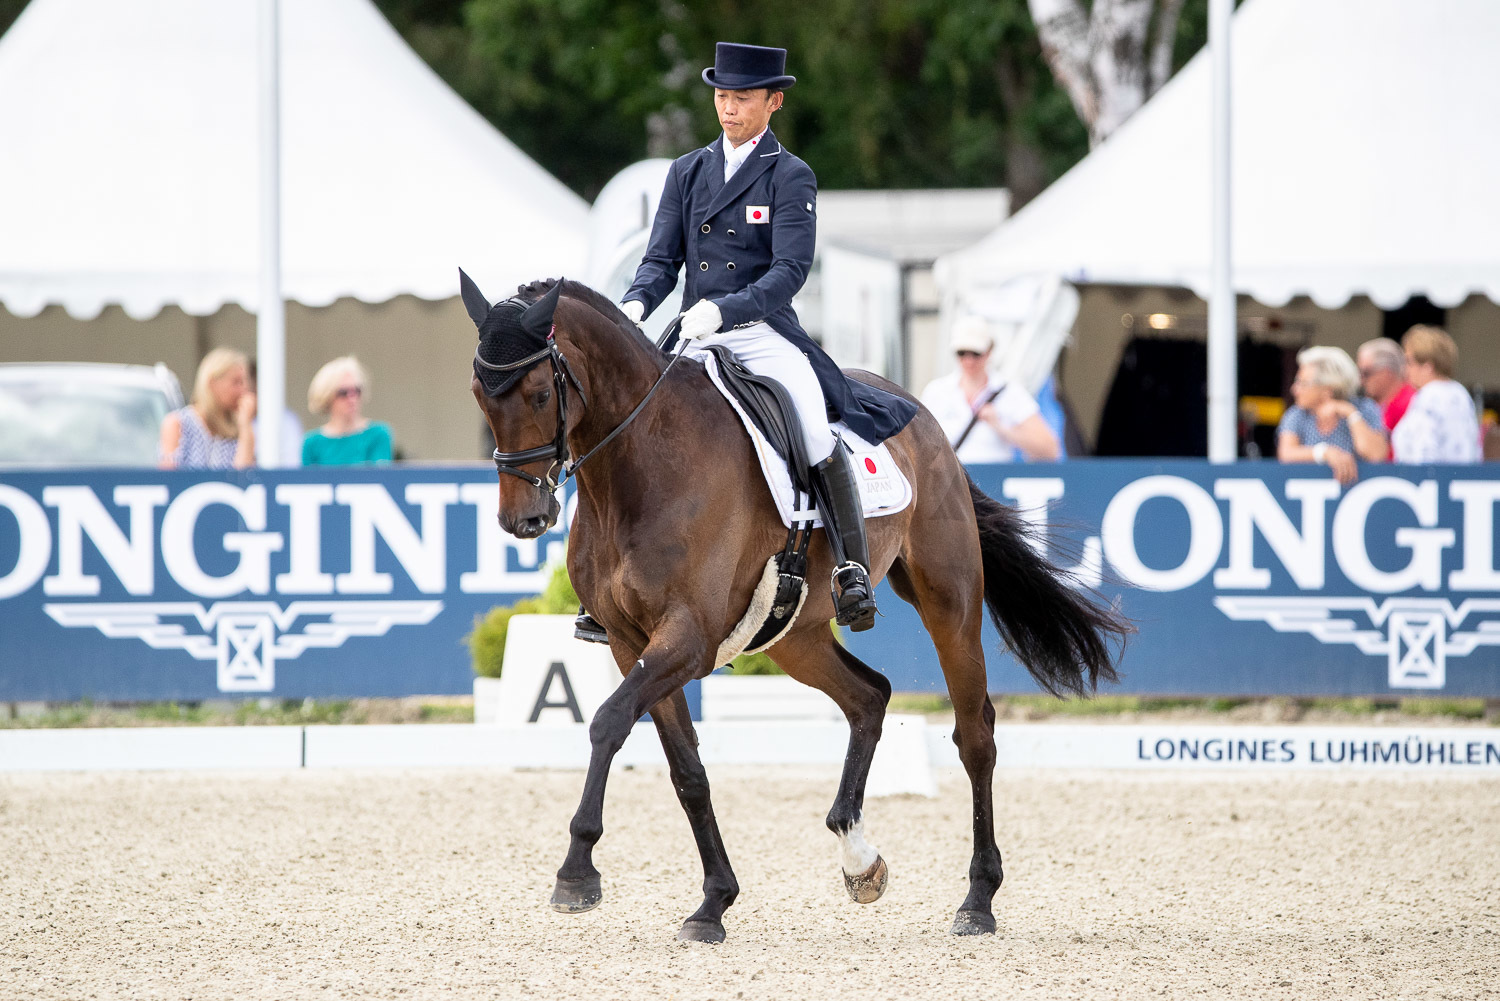 Trade Stands Hoys 2015 : Https: useventing.com news media news fei world number one takes